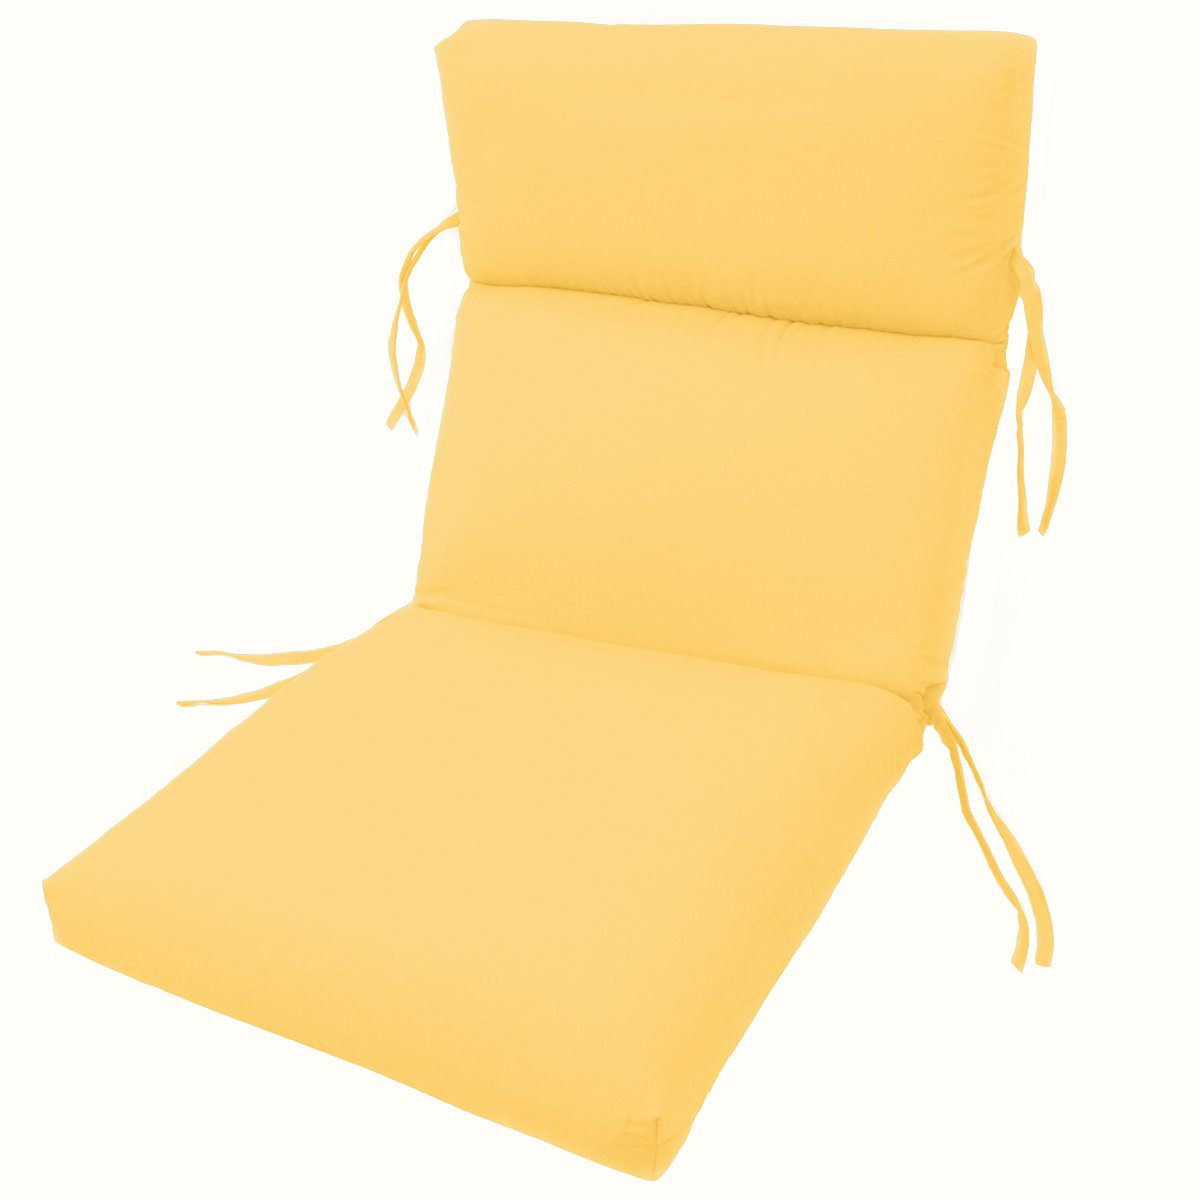 Comfort Classics Inc. Sunbrella Outdoor CHANNELED Chair Cushions 22W x 44L x 3H Hinge at 24 in Buttercup